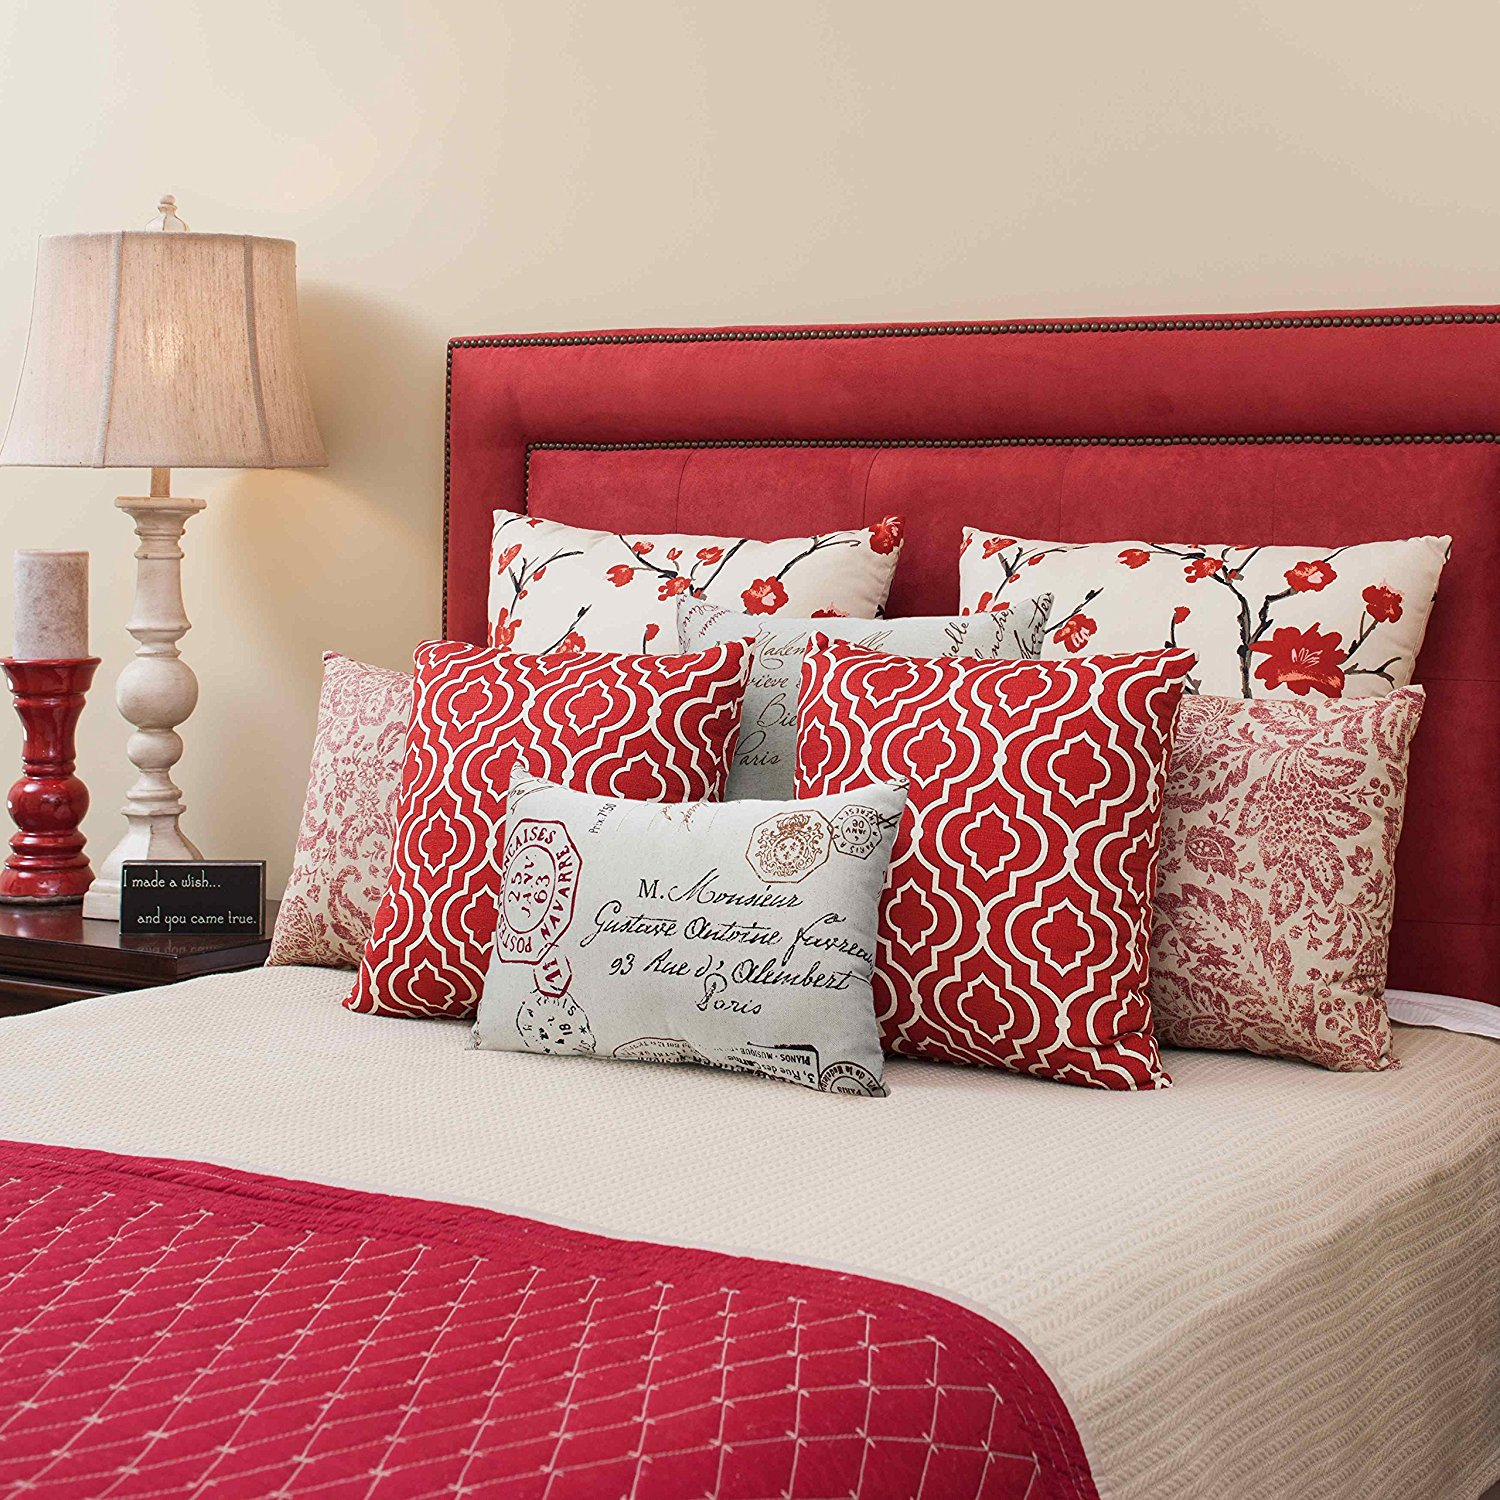 Image of: Red Throw Pillows Fabric